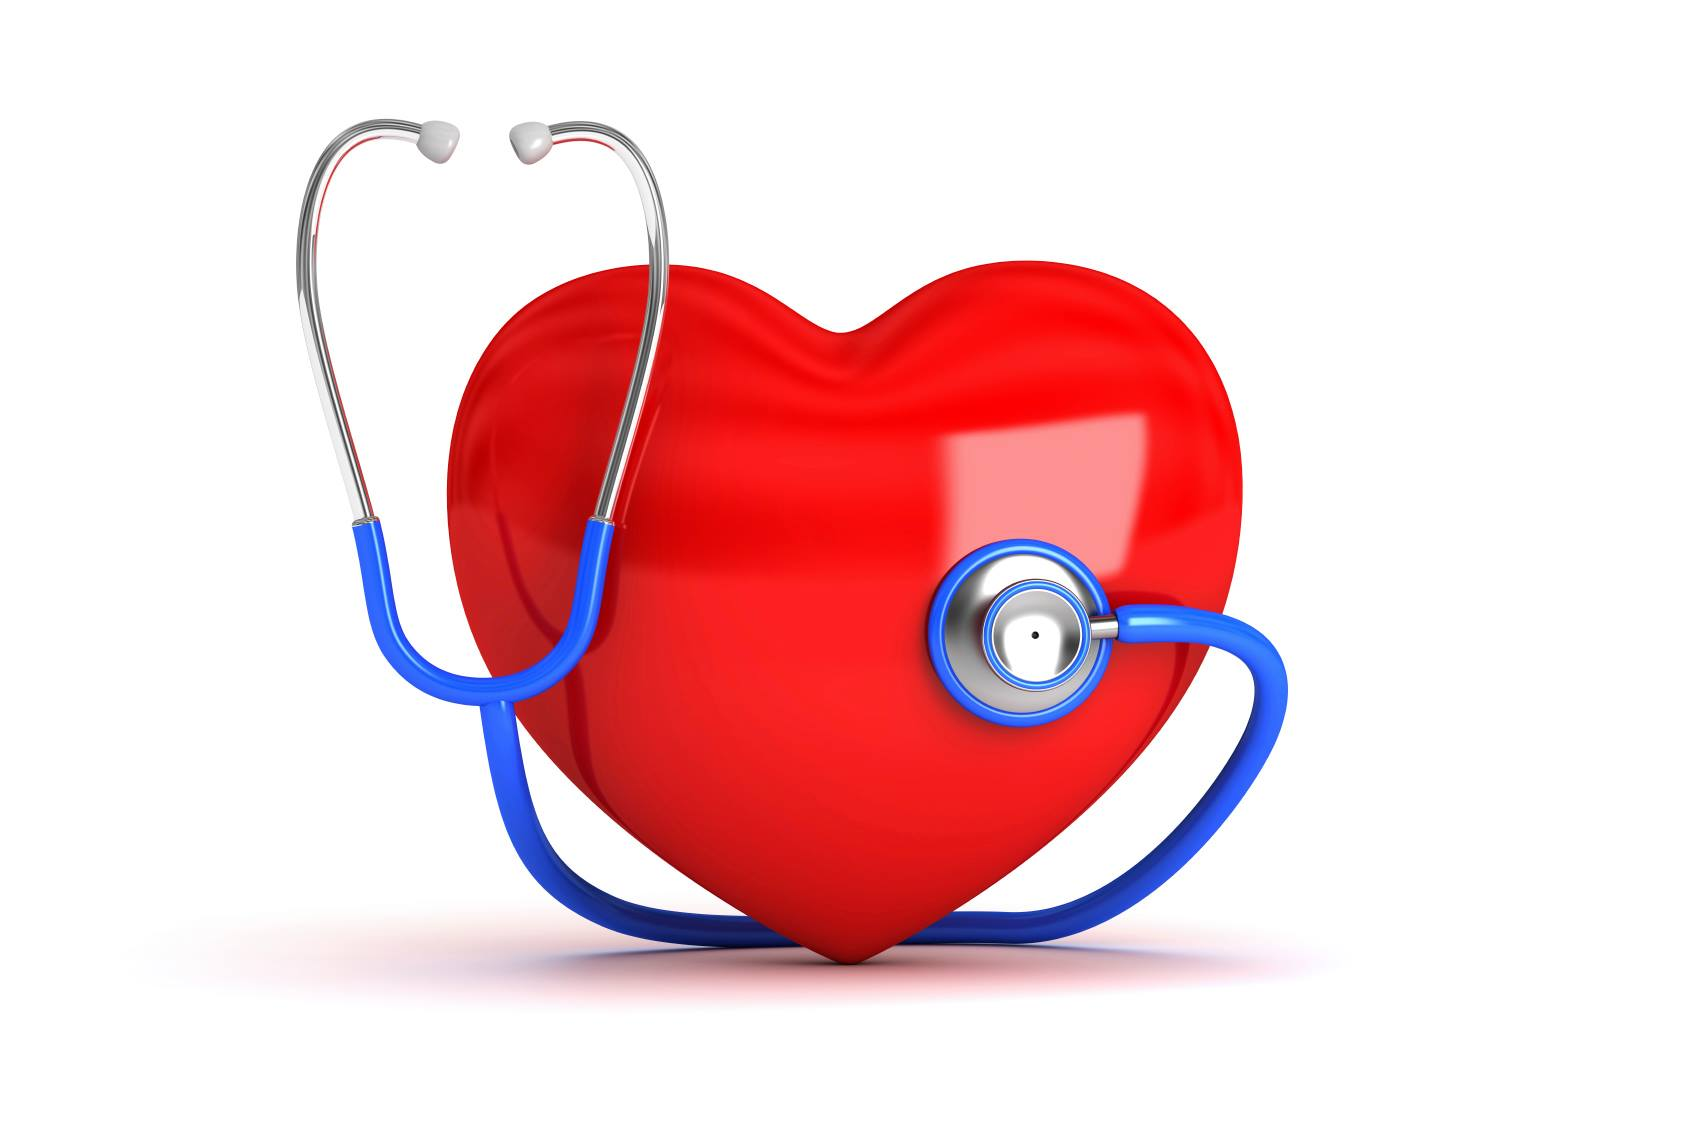 Heart disease and getting your Medical Examiner's Certificate